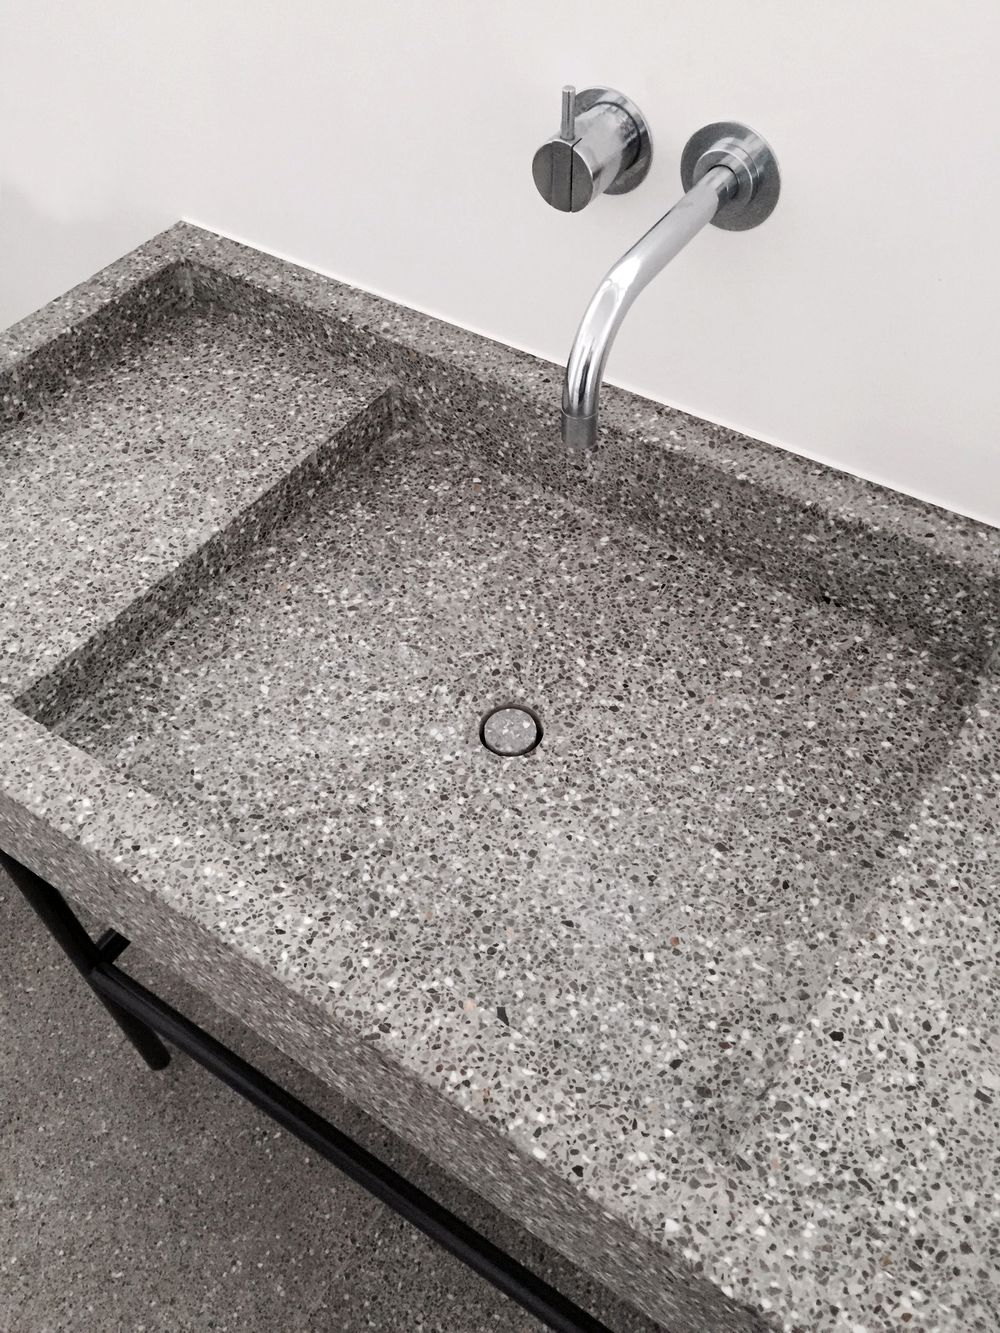 wash basin in terrazzo by marc merkx interior designer love this so much